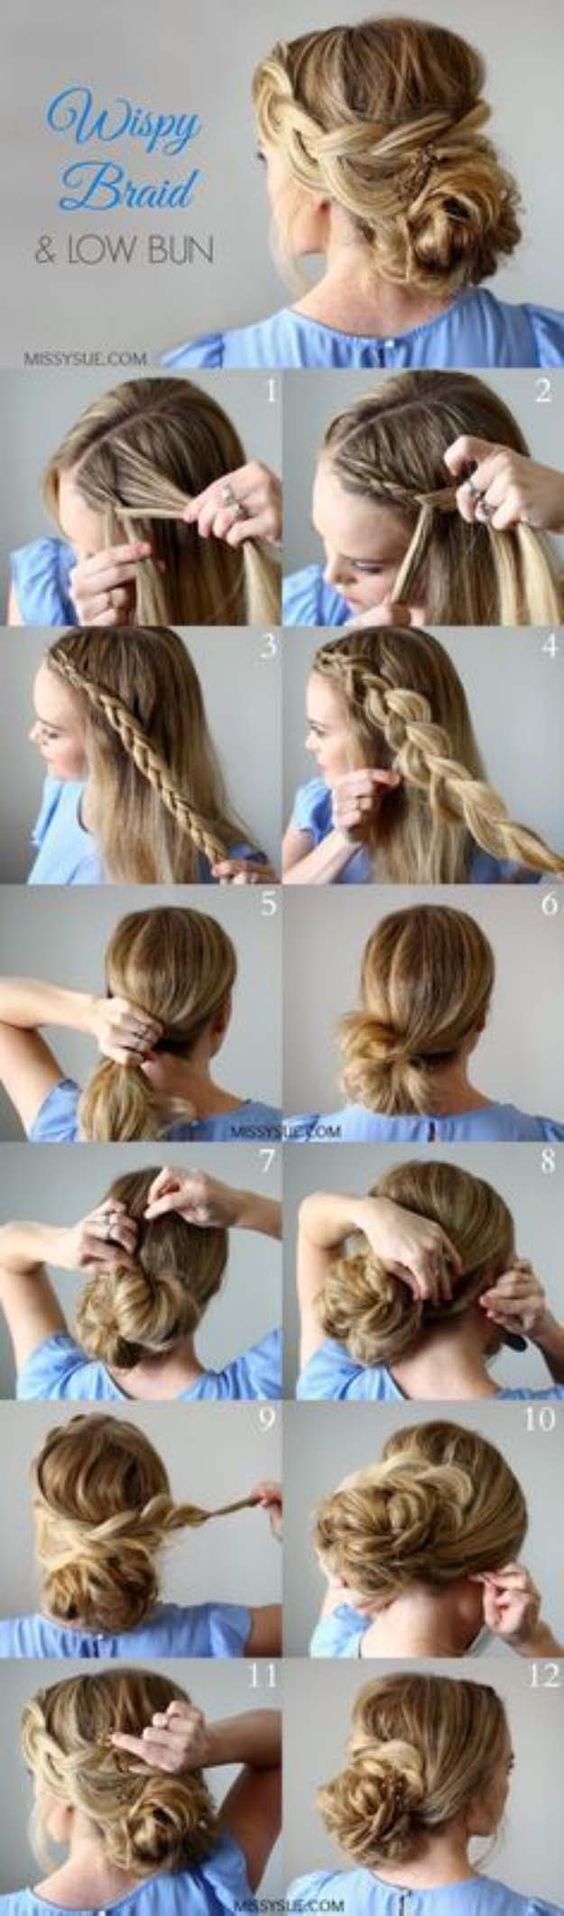 best mirror mirror images on pinterest easy hairstyle